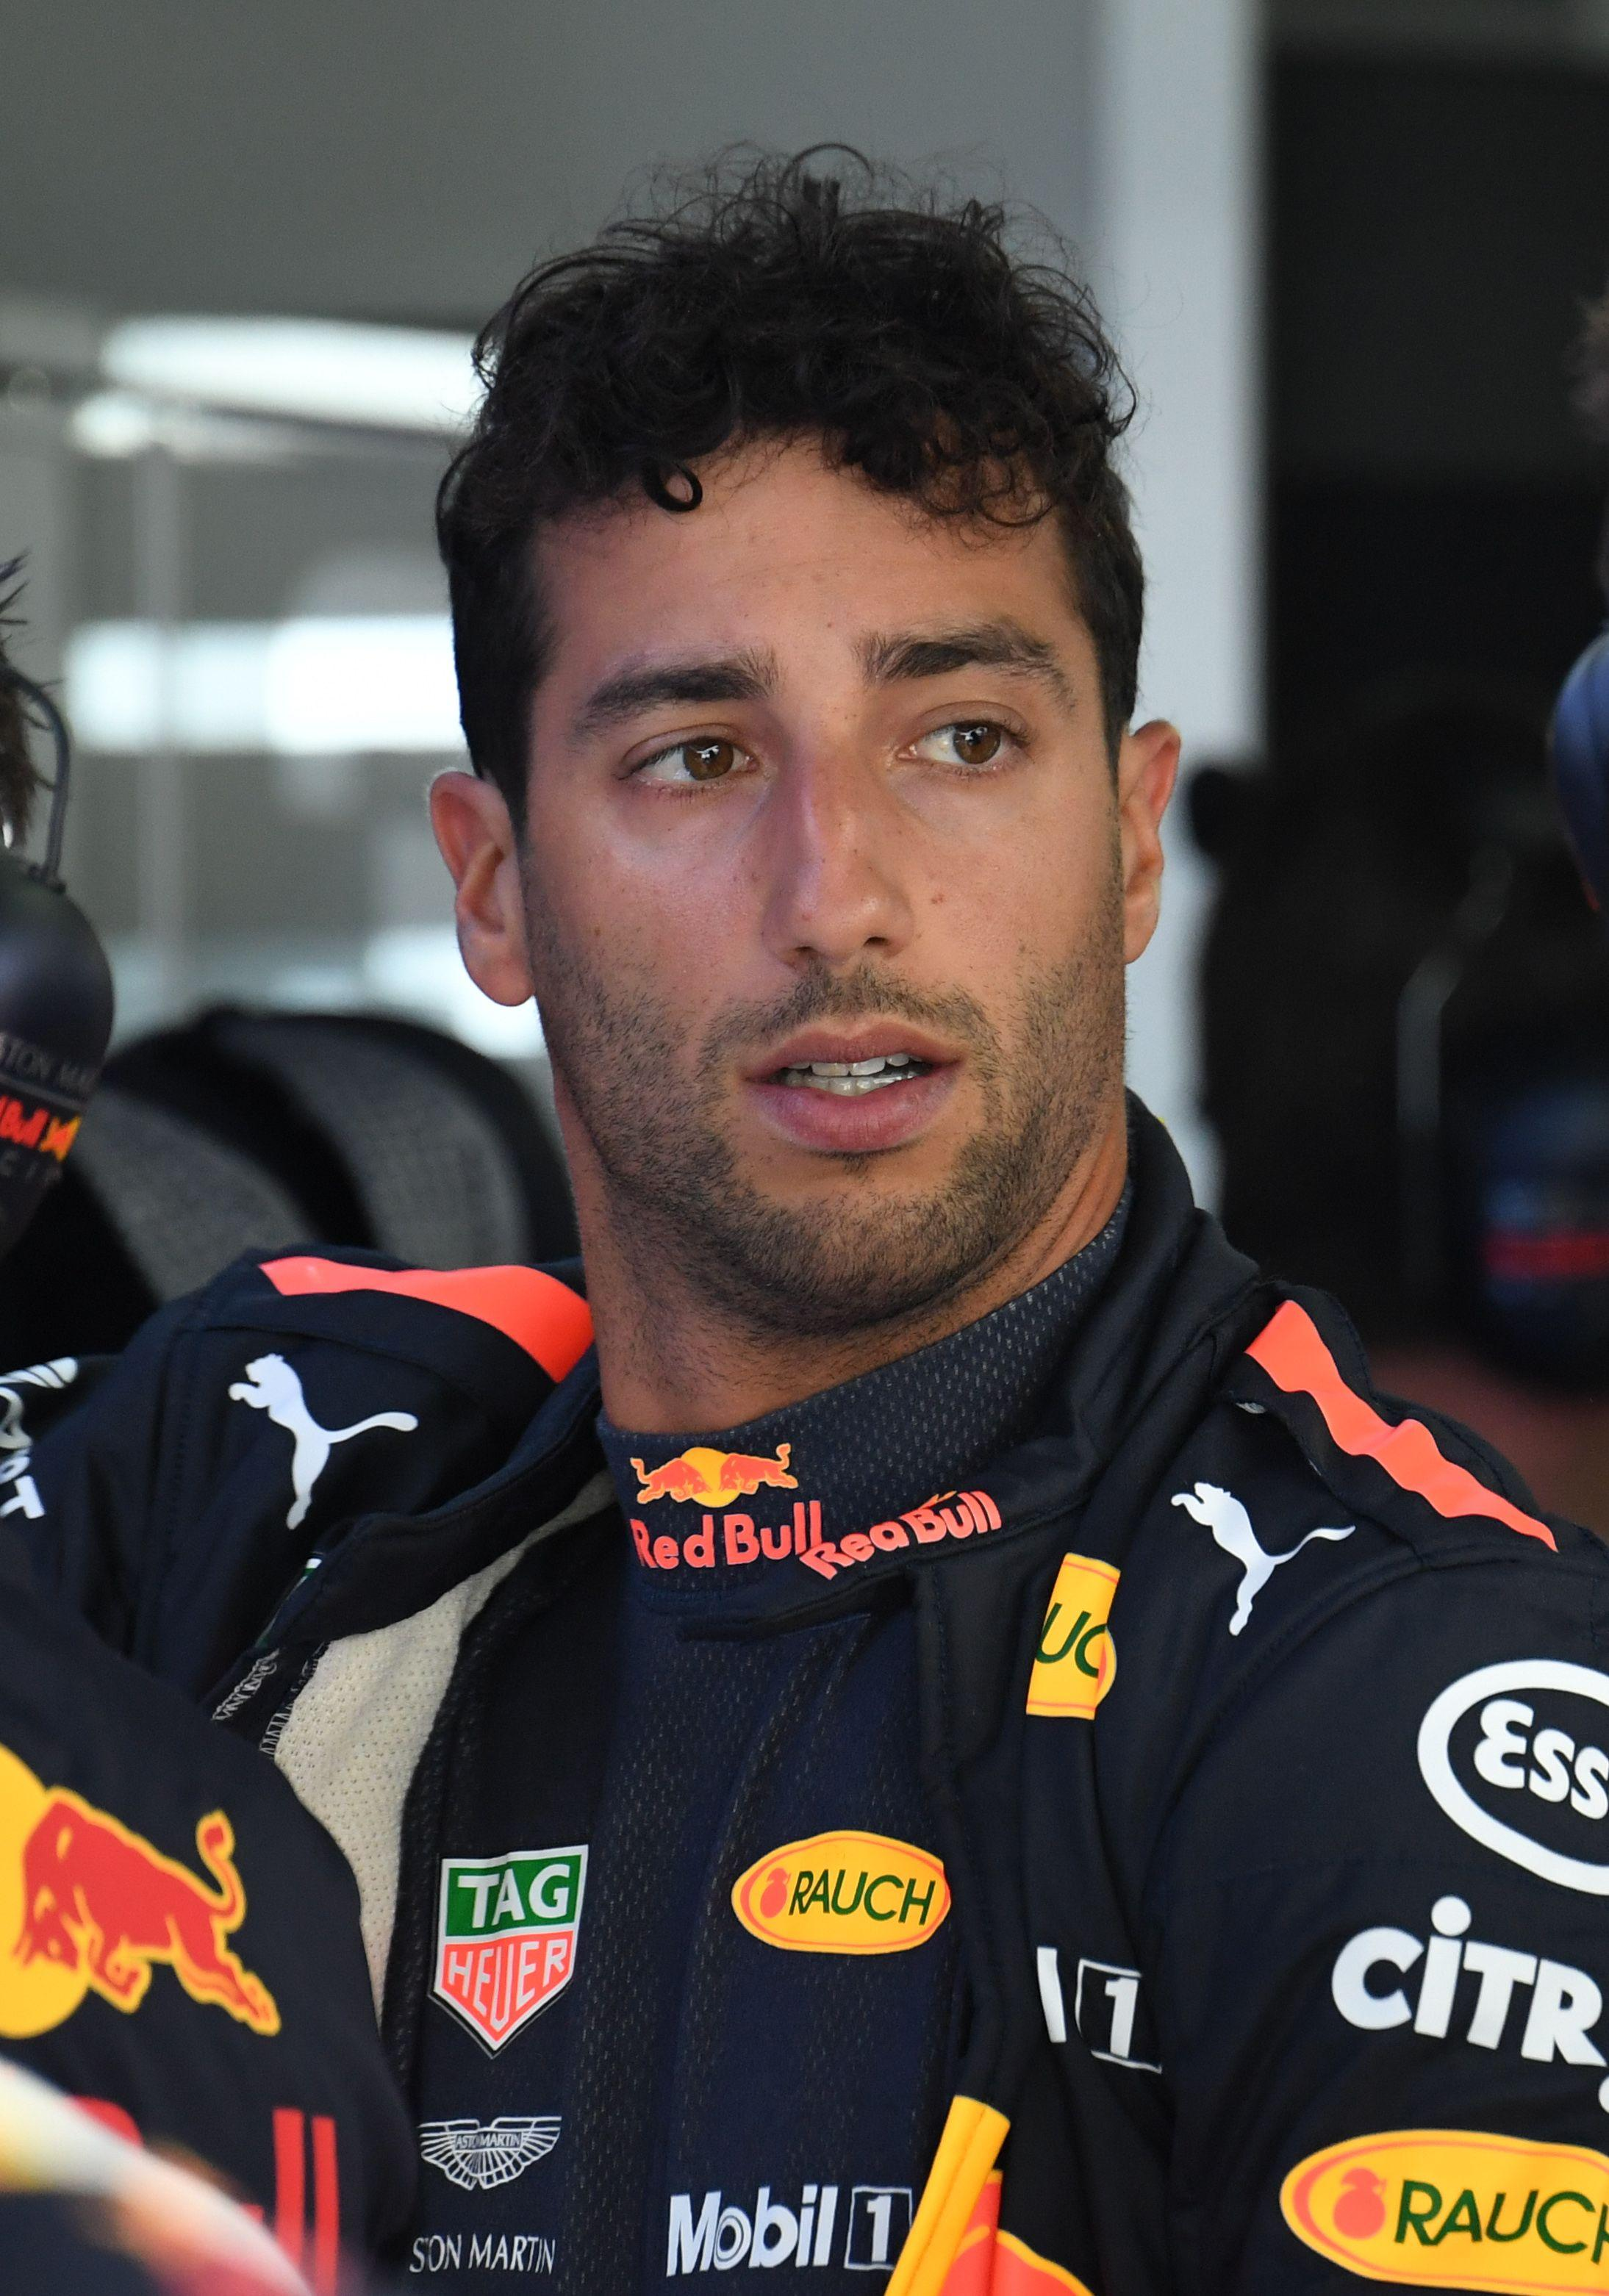 Daniel Ricciardo is quitting Red Bull and moving to Renault